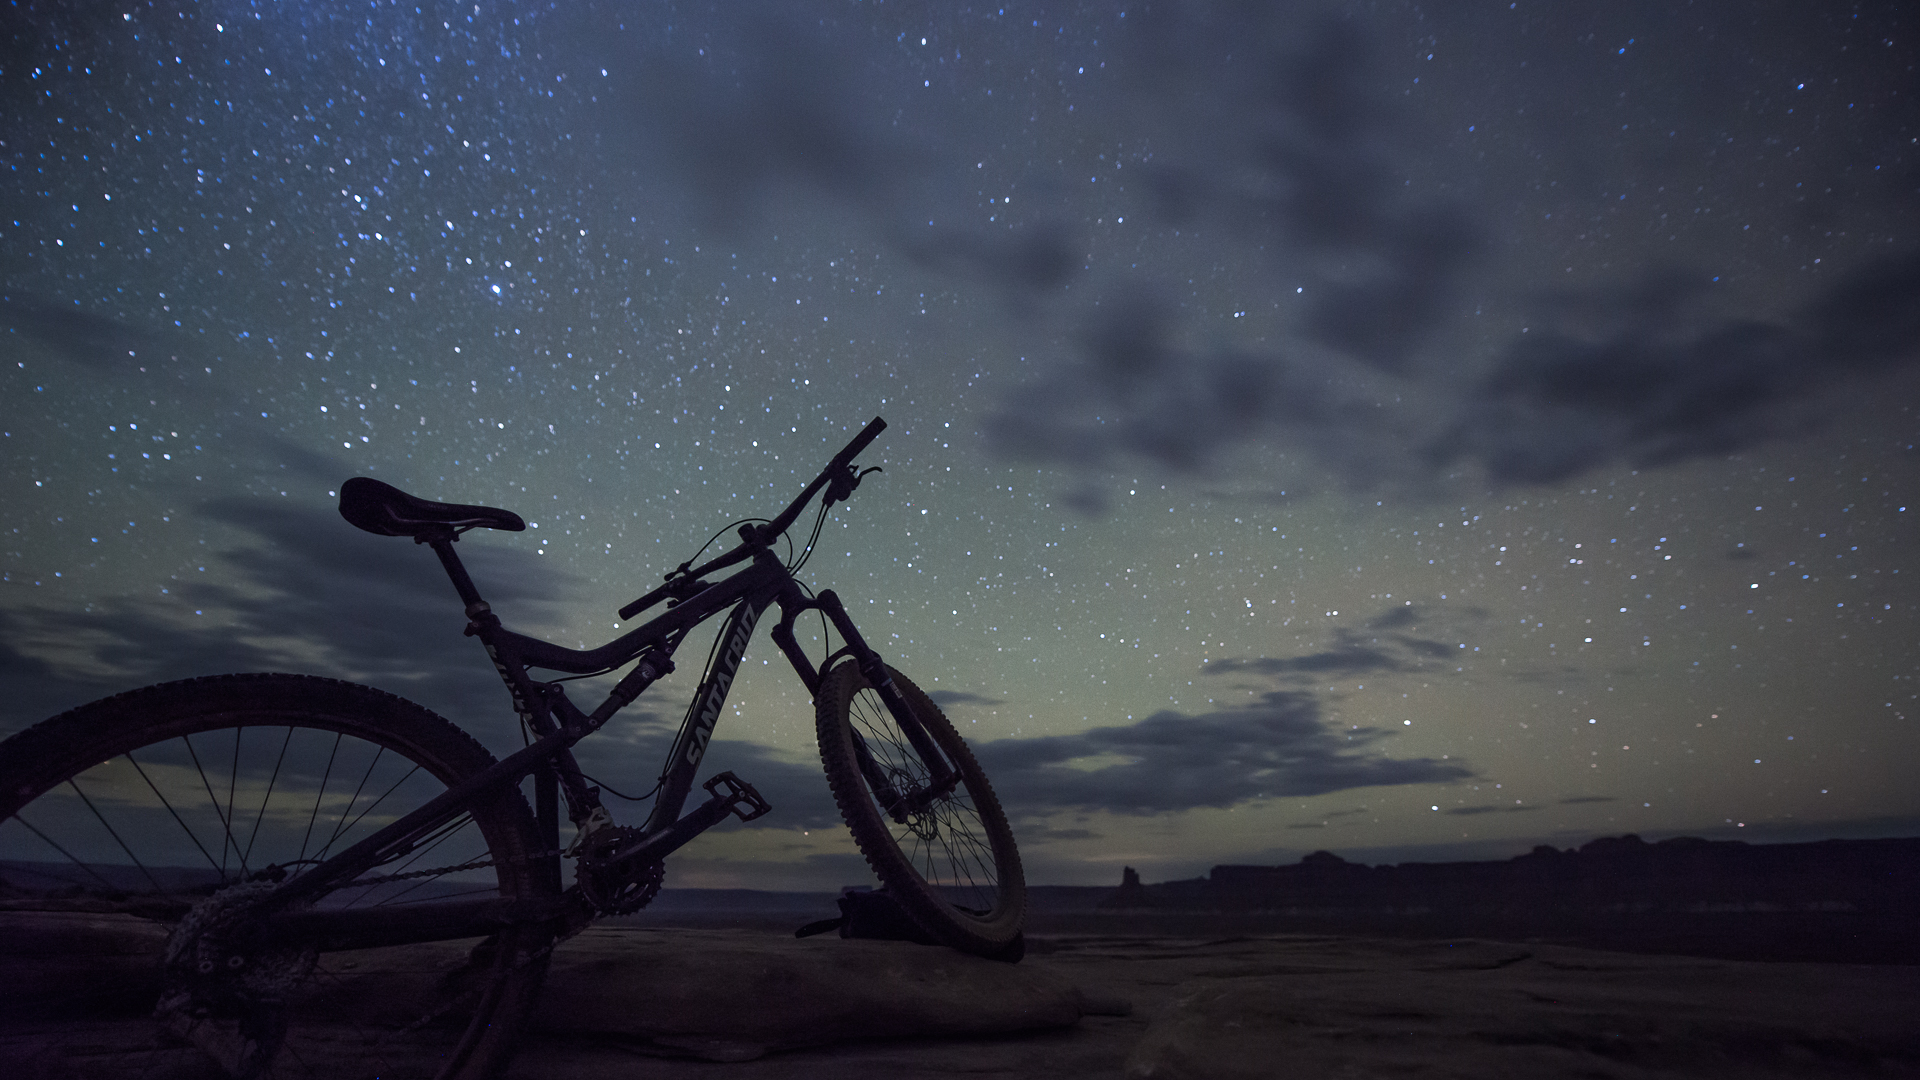 mountain bike starry nightscape